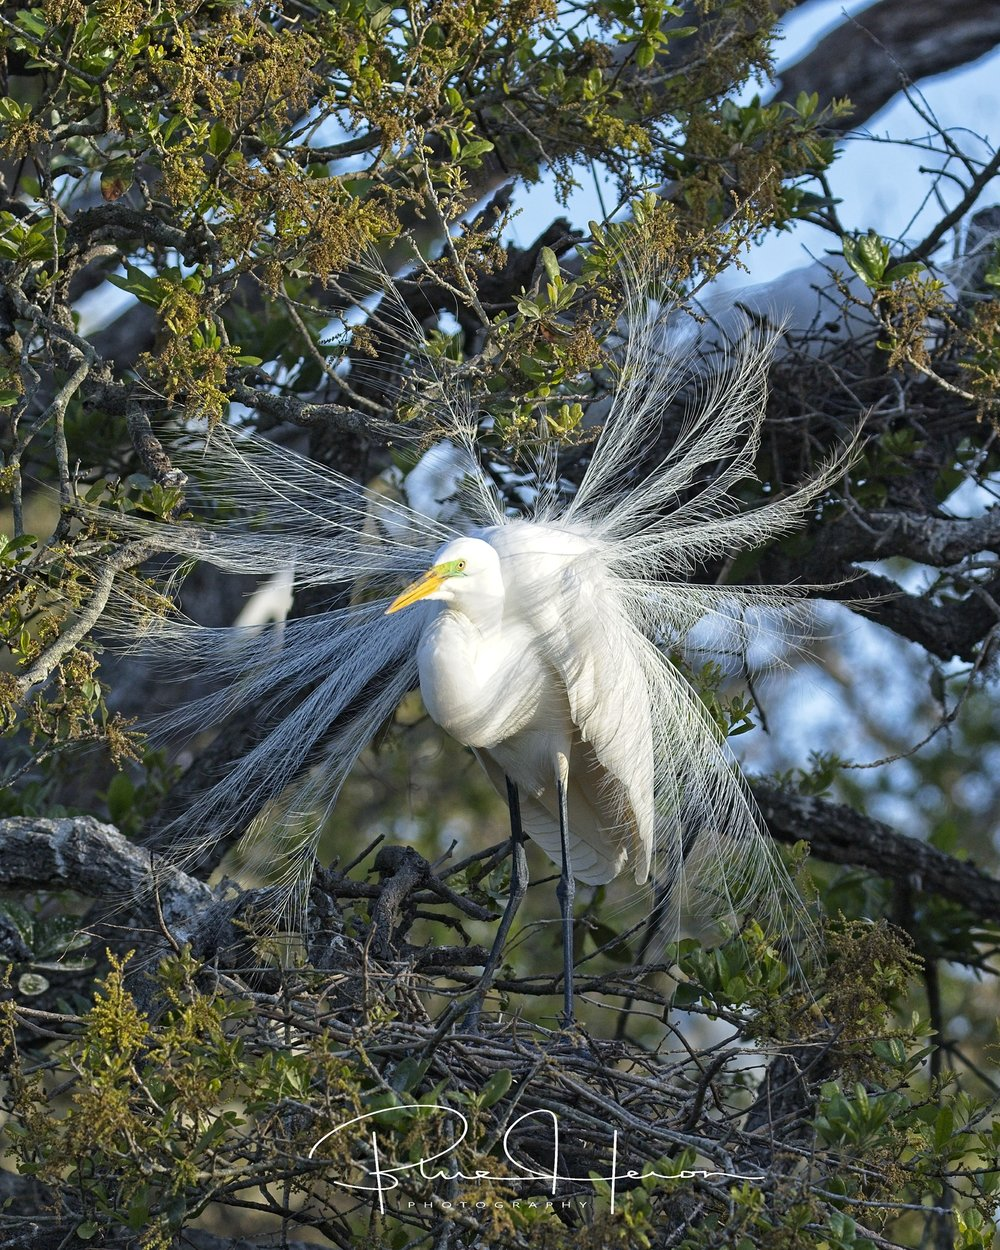 Spring is in the air all right...The Great Egrets were in full display to attract their mates..